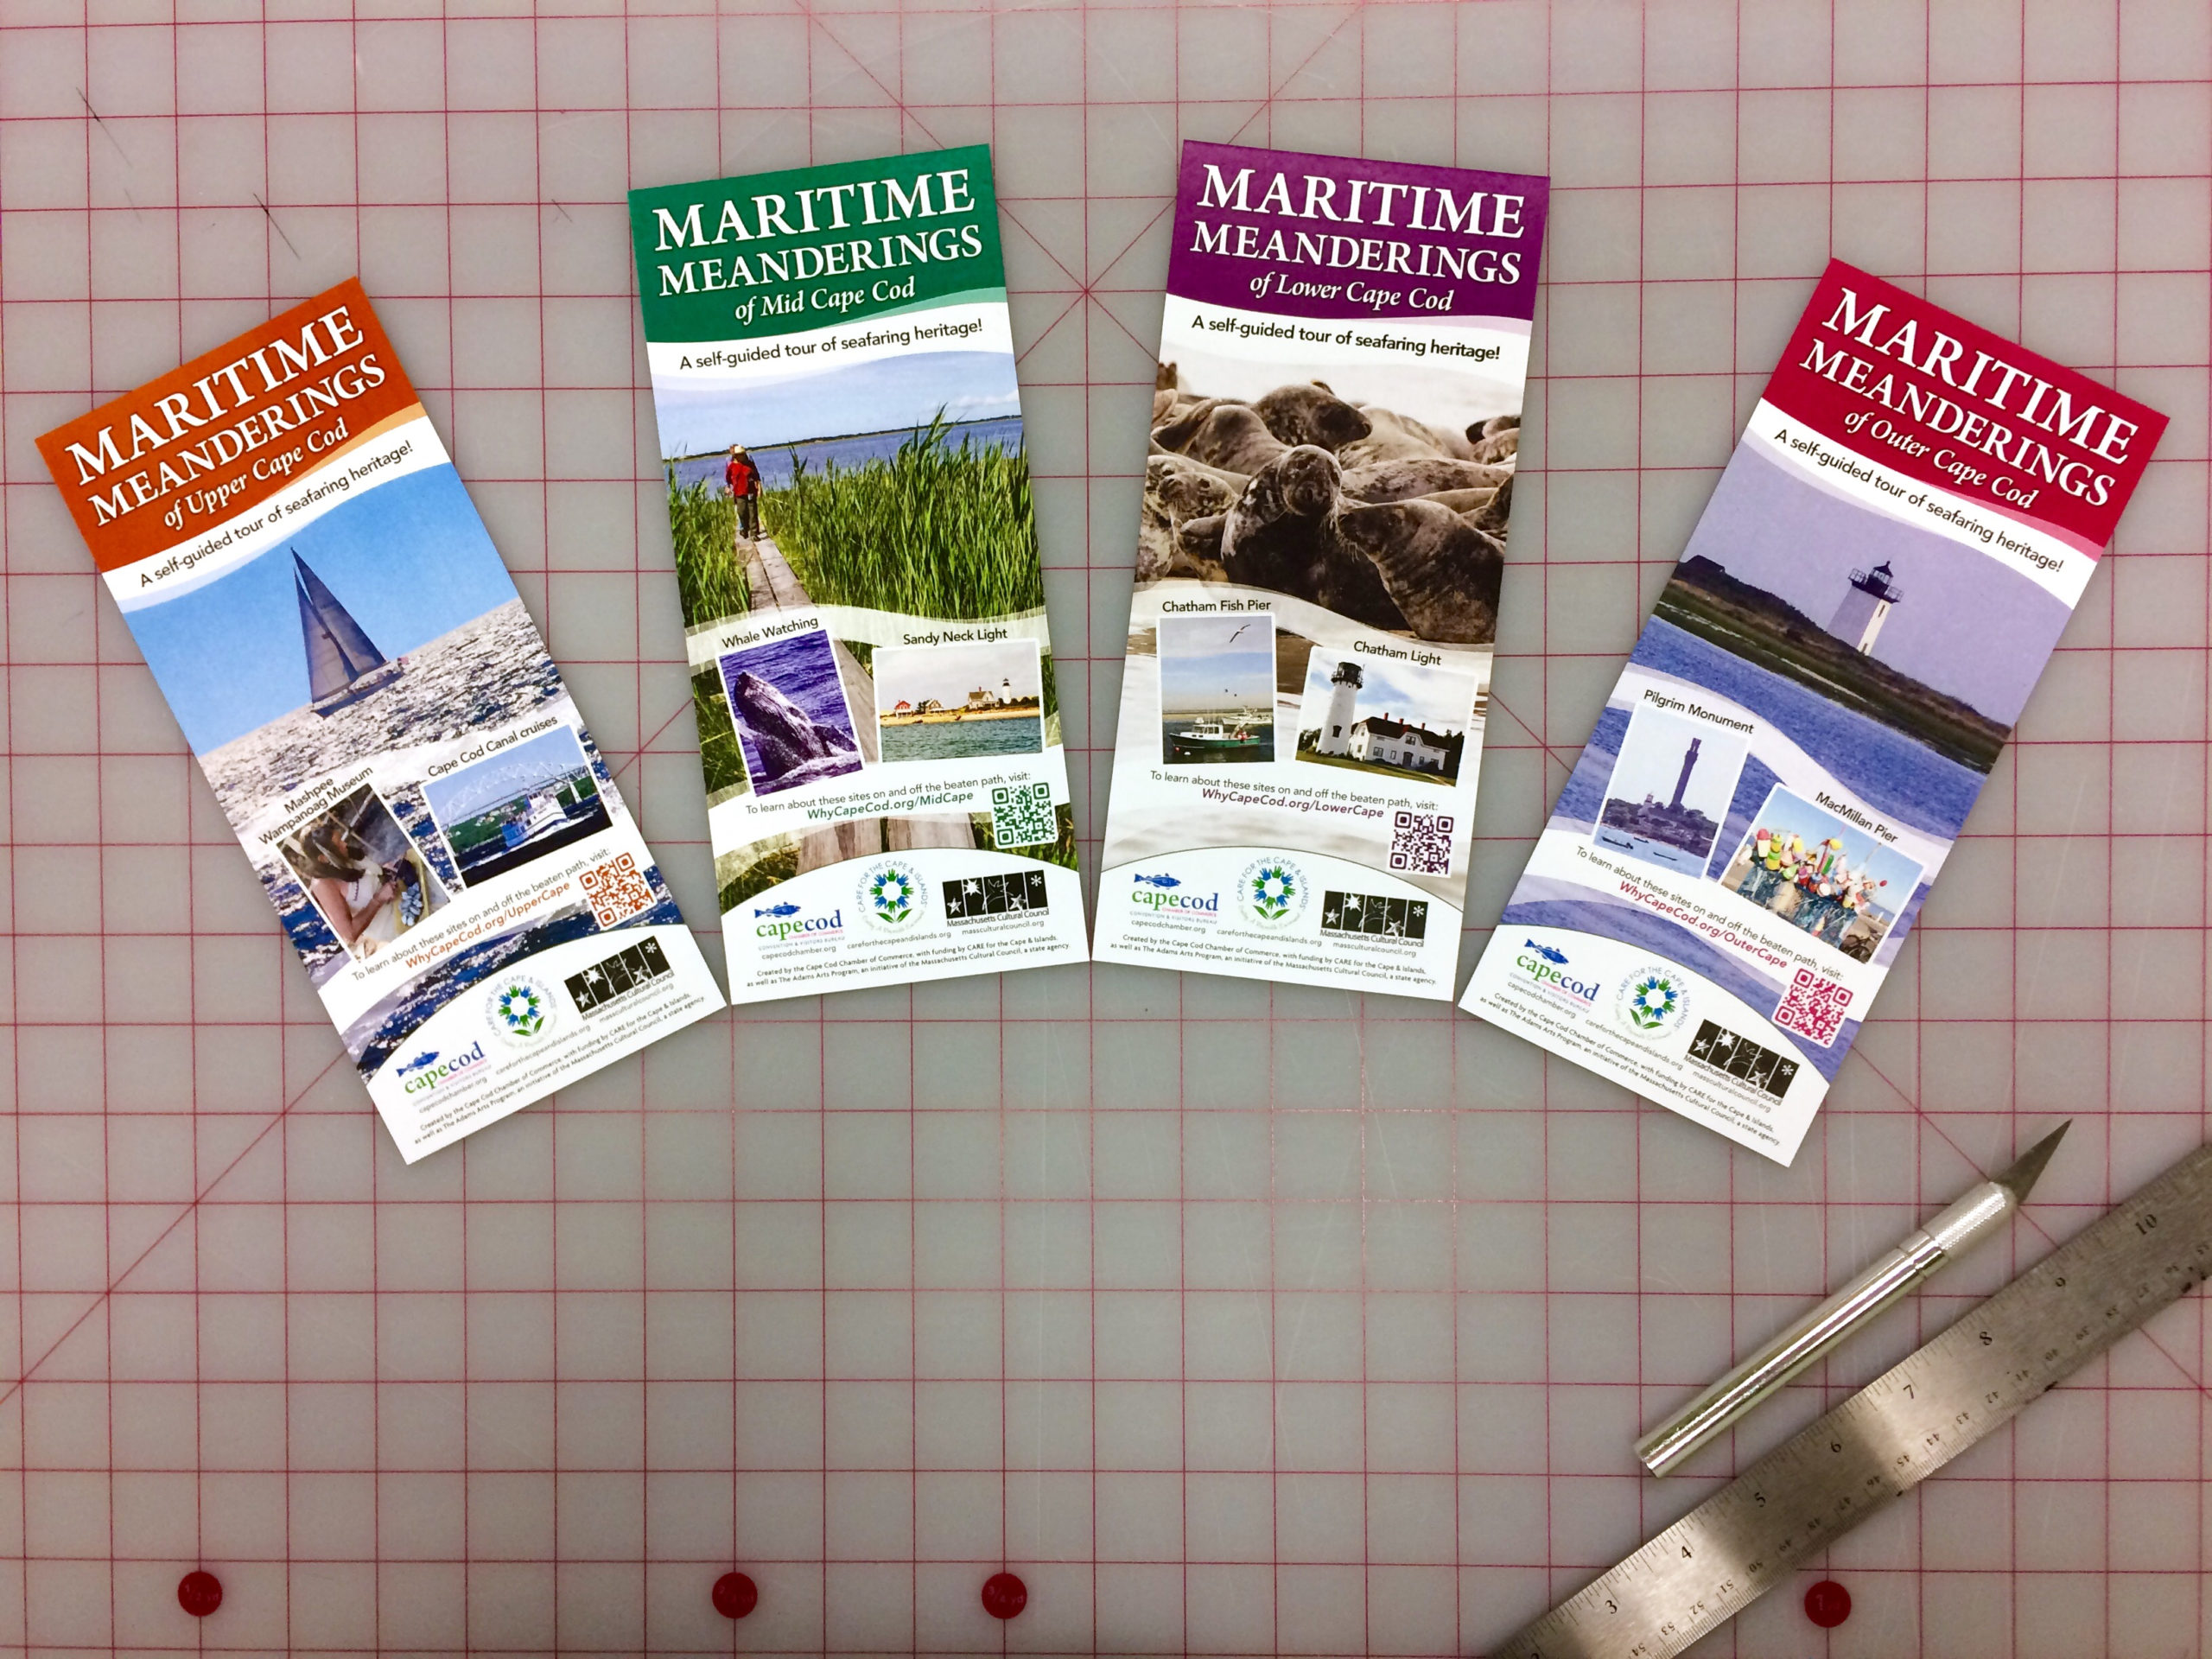 Design Your Day on Cape Cod: Maritime Meanderings